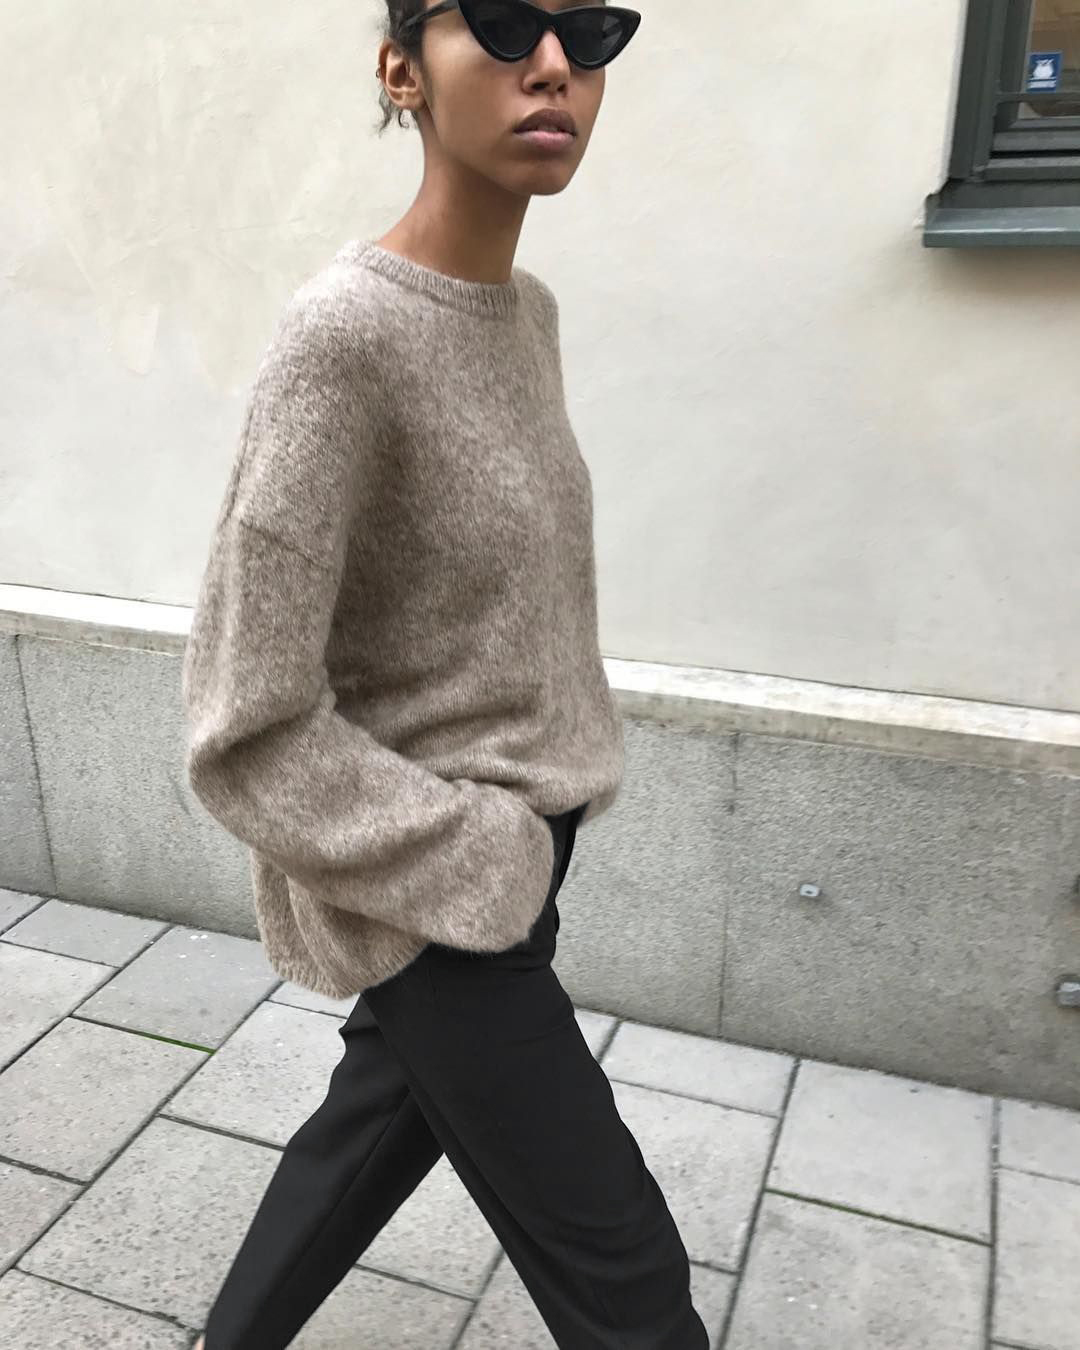 This Effortless 3-Piece Outfit Is Incredibly Chic — Cat-Eye Sunglasses, Neutral Sweater, and Black Pants